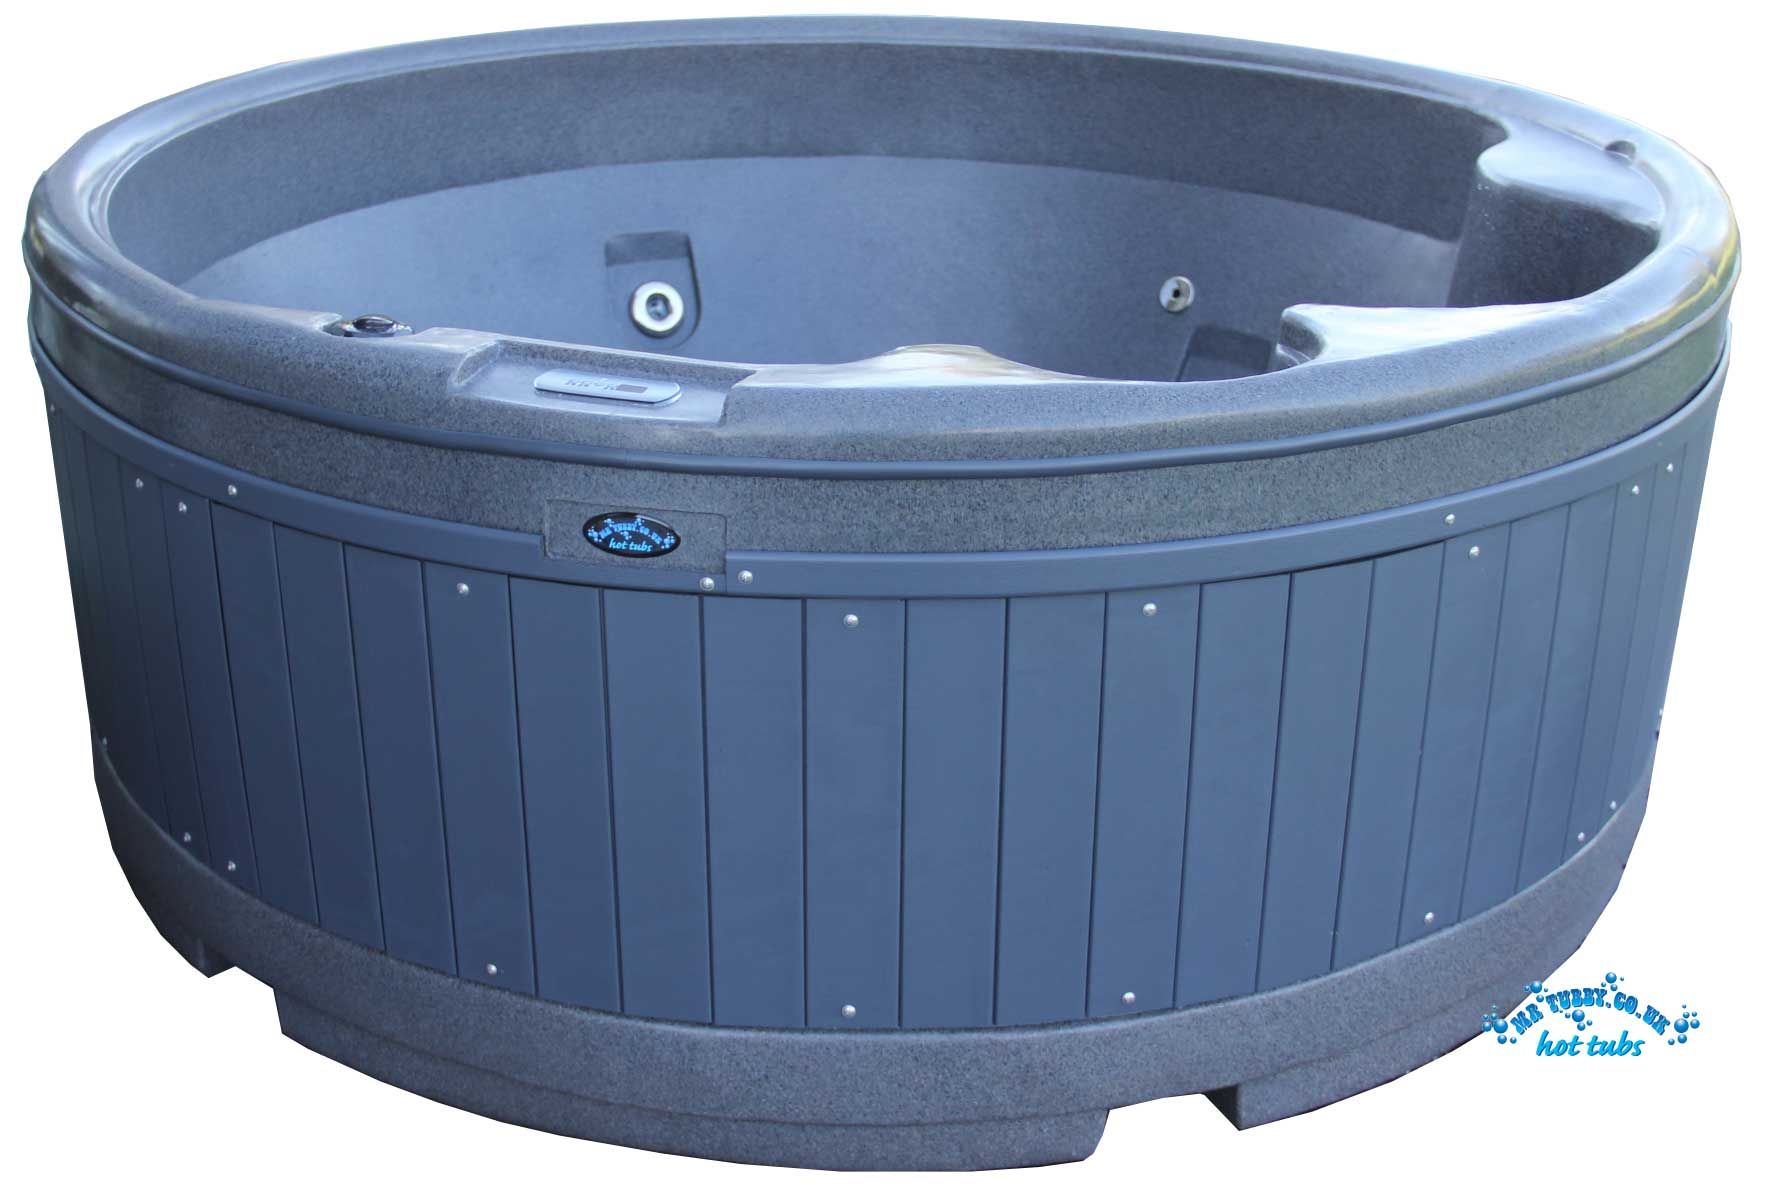 Mr Tubby Fun Tub SPA - Plug & Play 4 Seater 1.8m Round Mood lighting